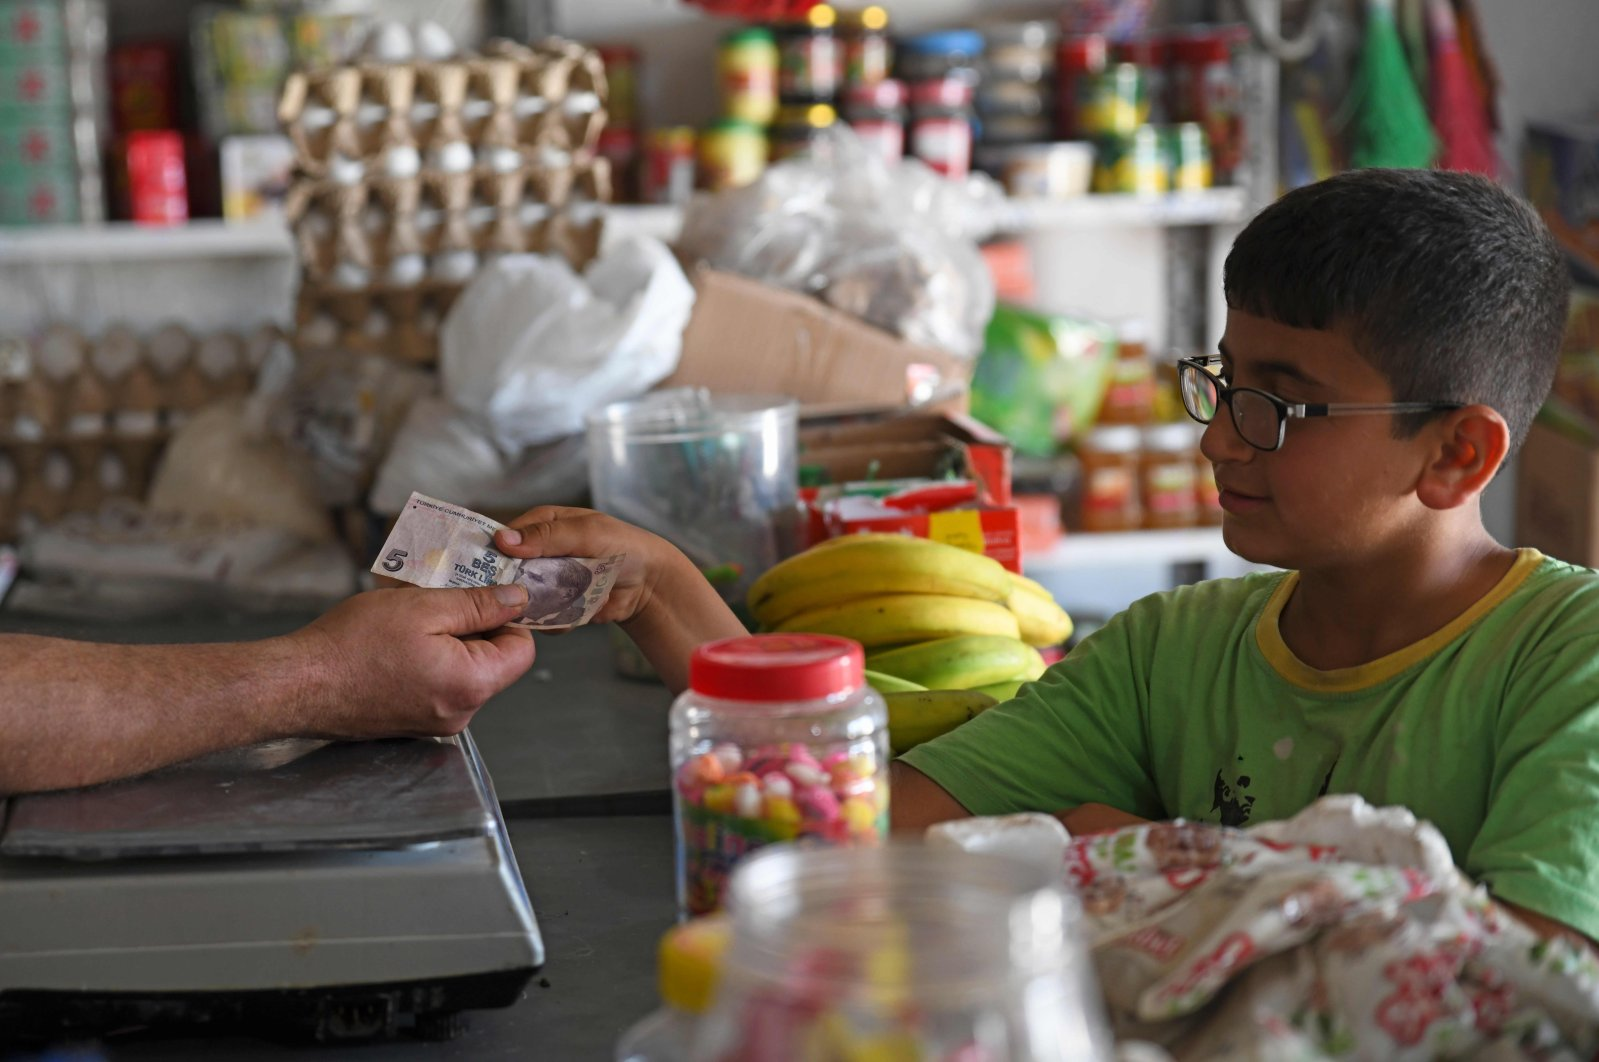 A boy pays a merchant with a Turkish lira banknote at a shop in the town of Jinderes, in the Afrin district of northwestern Syria, June 10, 2020. (AFP Photo)